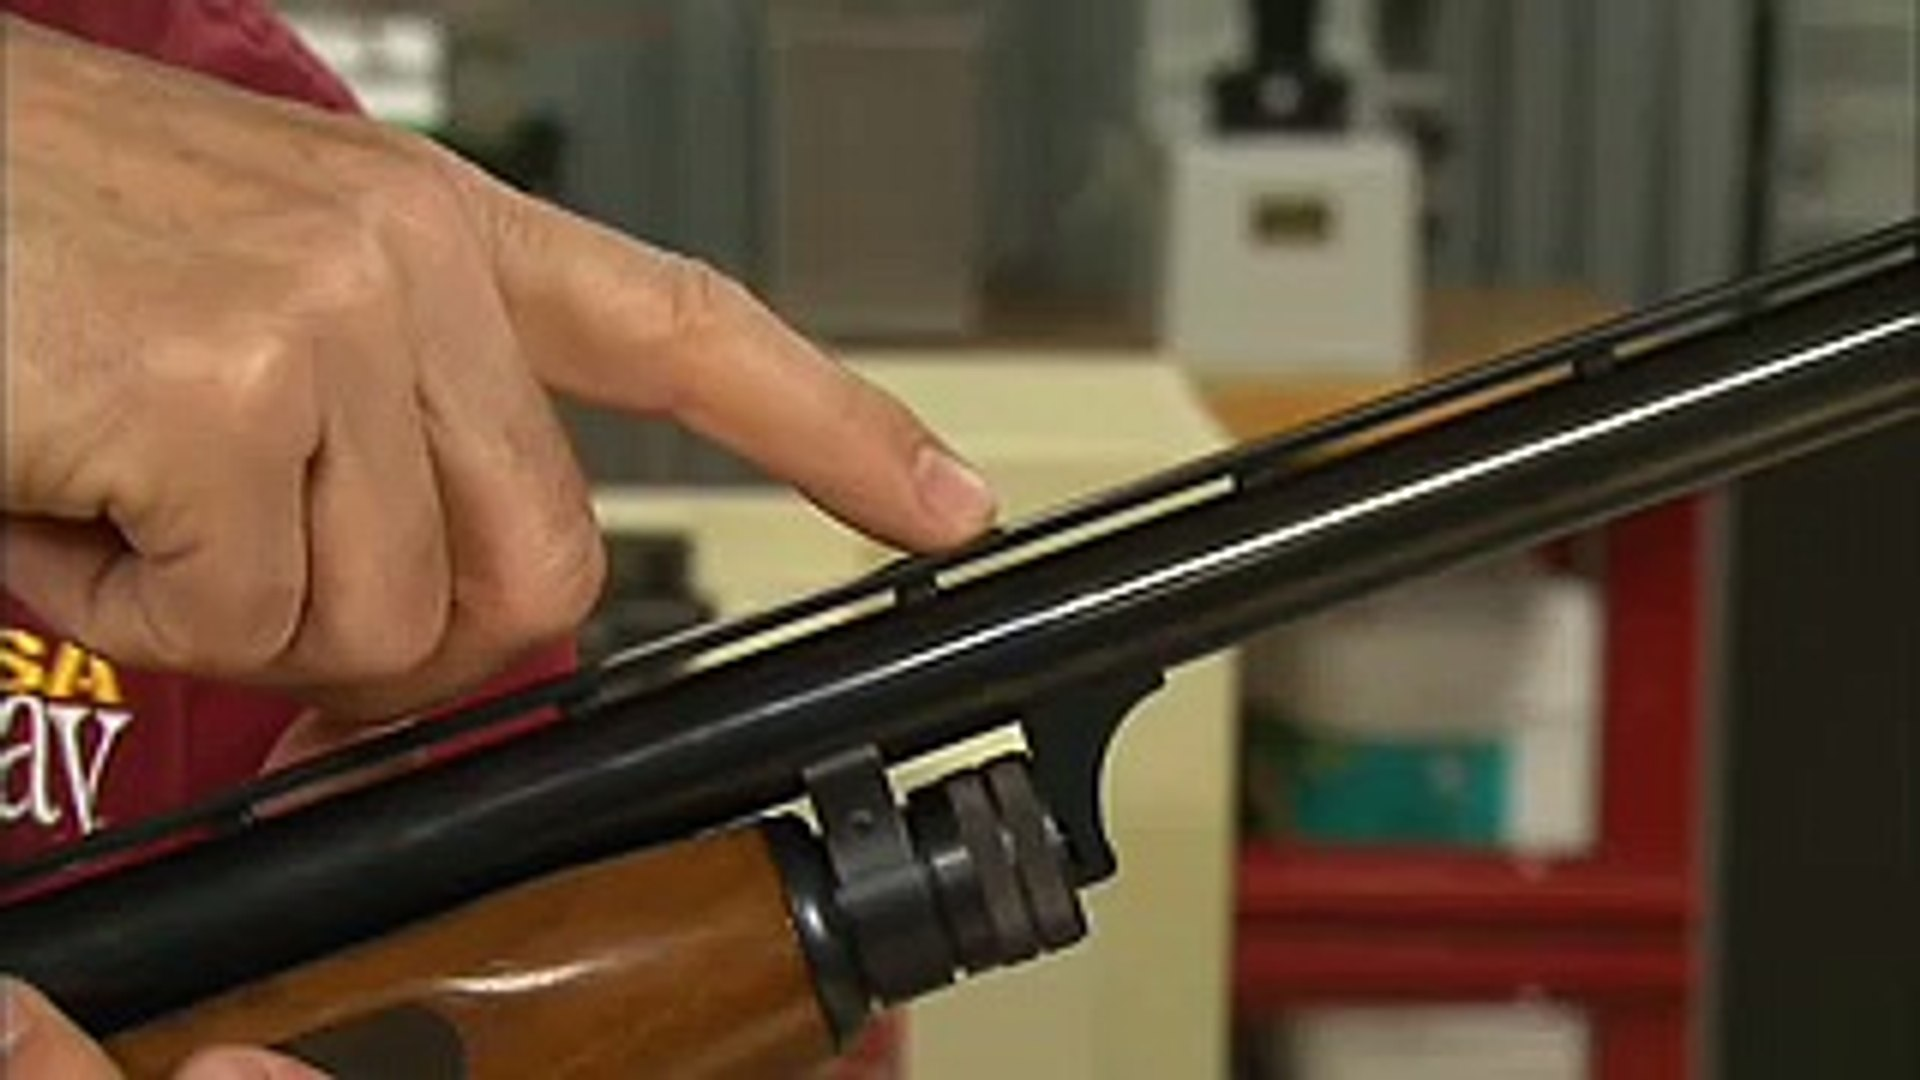 Gunsmithing - How to Install a Middle Bead Sight on a Shotgun Rib